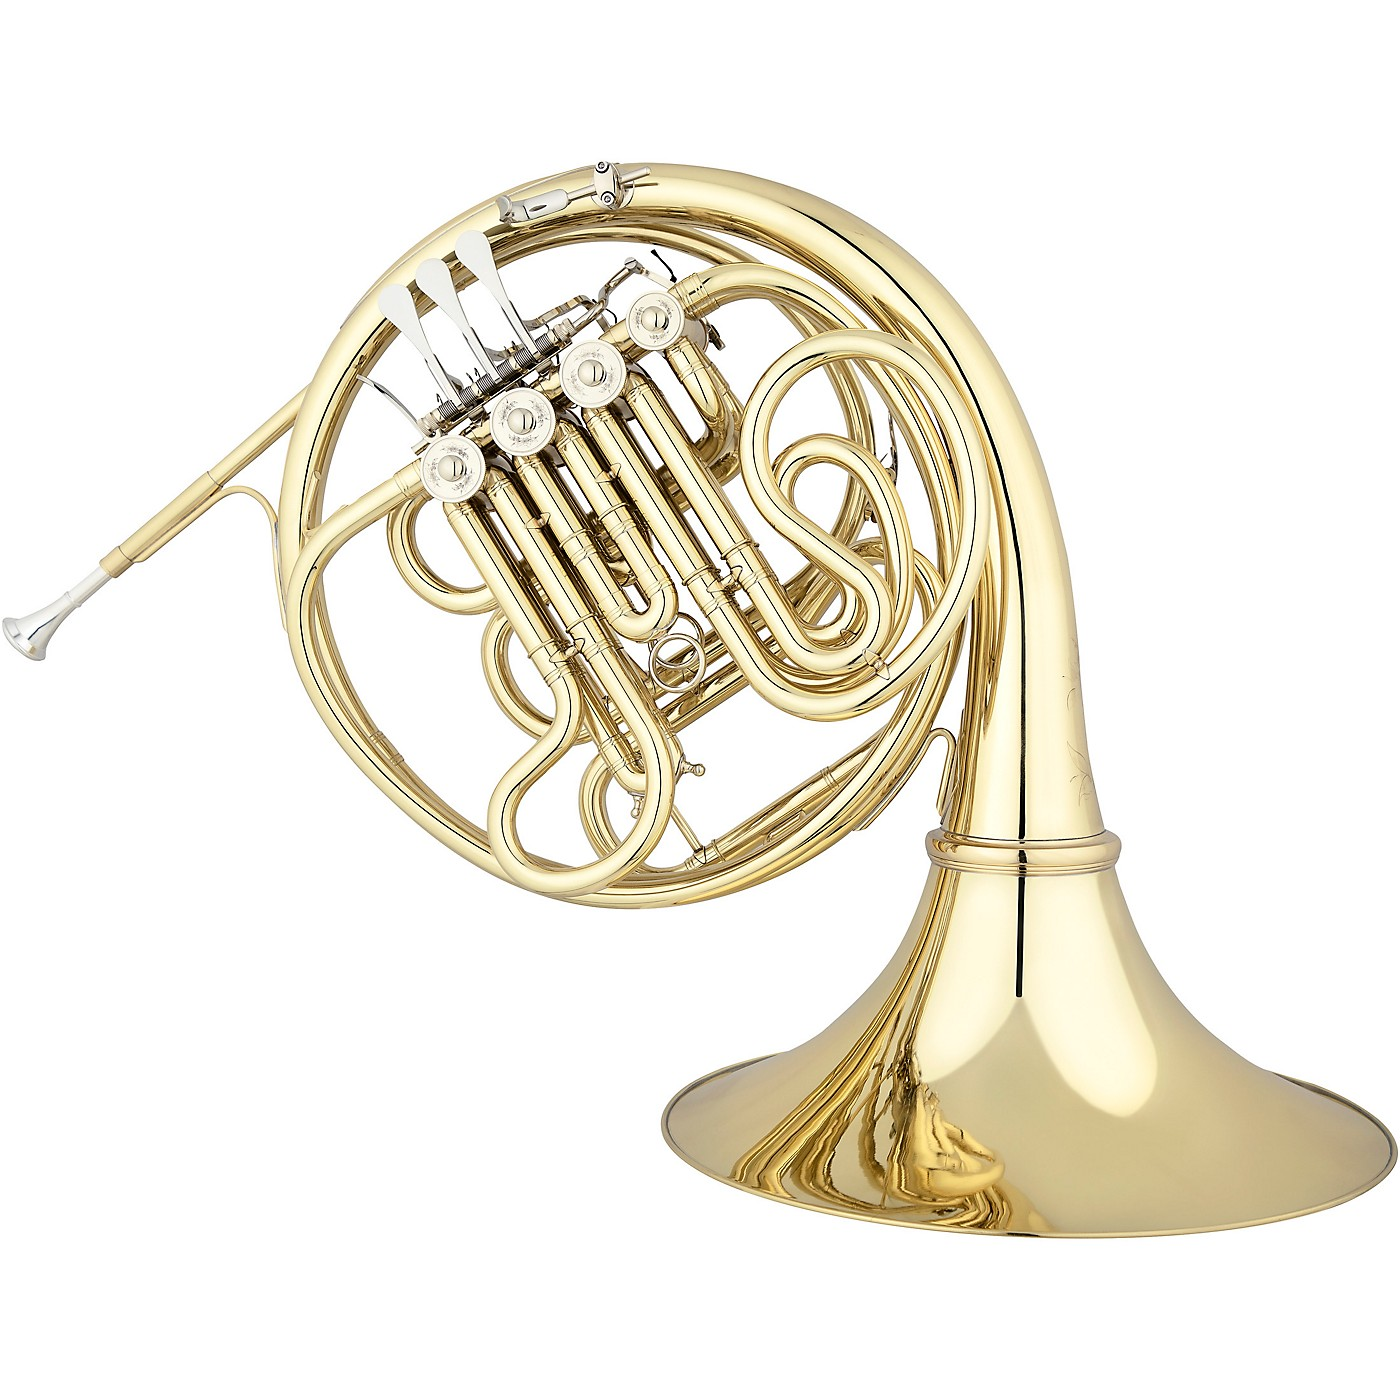 Eastman EFH884D Professional Series Double Horn with Detachable Bell thumbnail